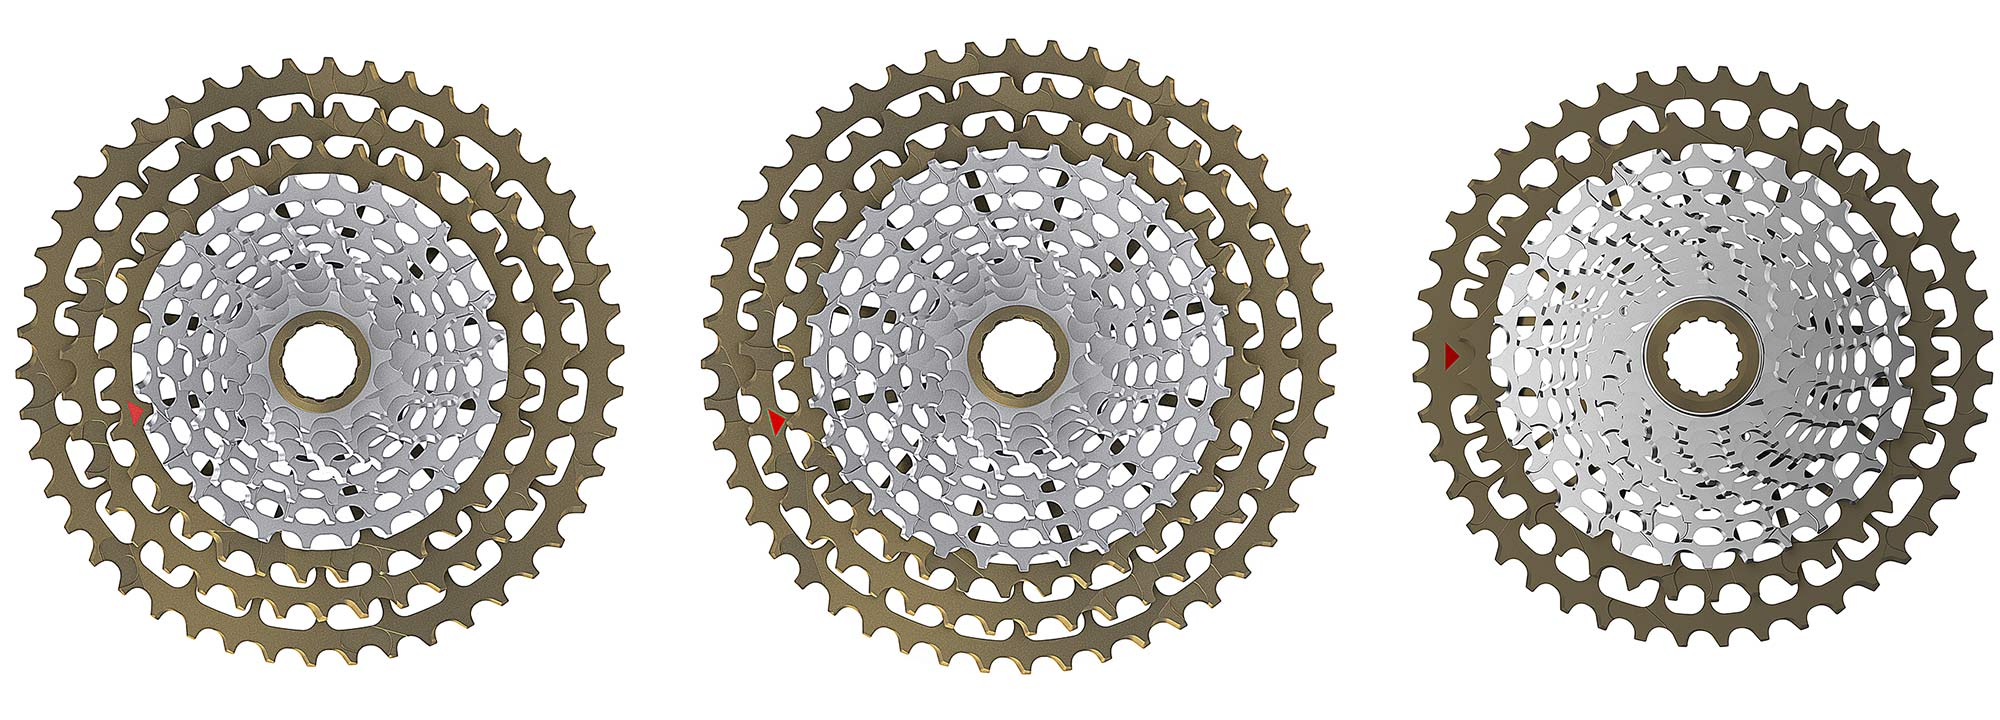 Ingrid Gran Turismo R 1x 11 12-speed road bike drivetrain, made-in-Italy, cassettes